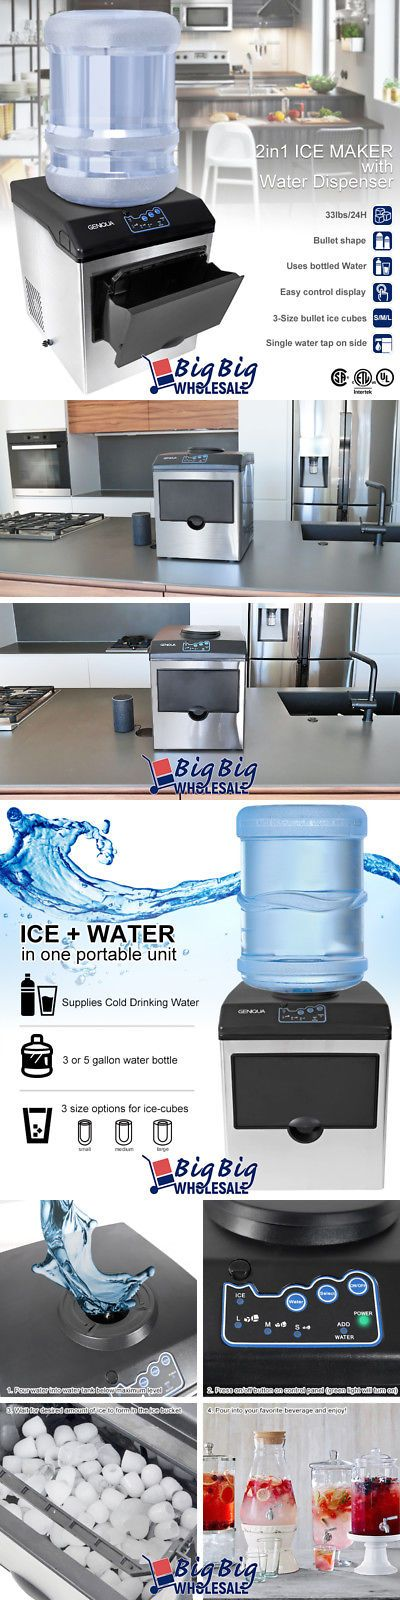 Countertop Ice Makers 122929 Portable 2 In 1 Water Dispenser W Built In Ice Maker Stainless Steel 33lbs Day Buy It Now Only 1 Ice Maker Countertops Maker